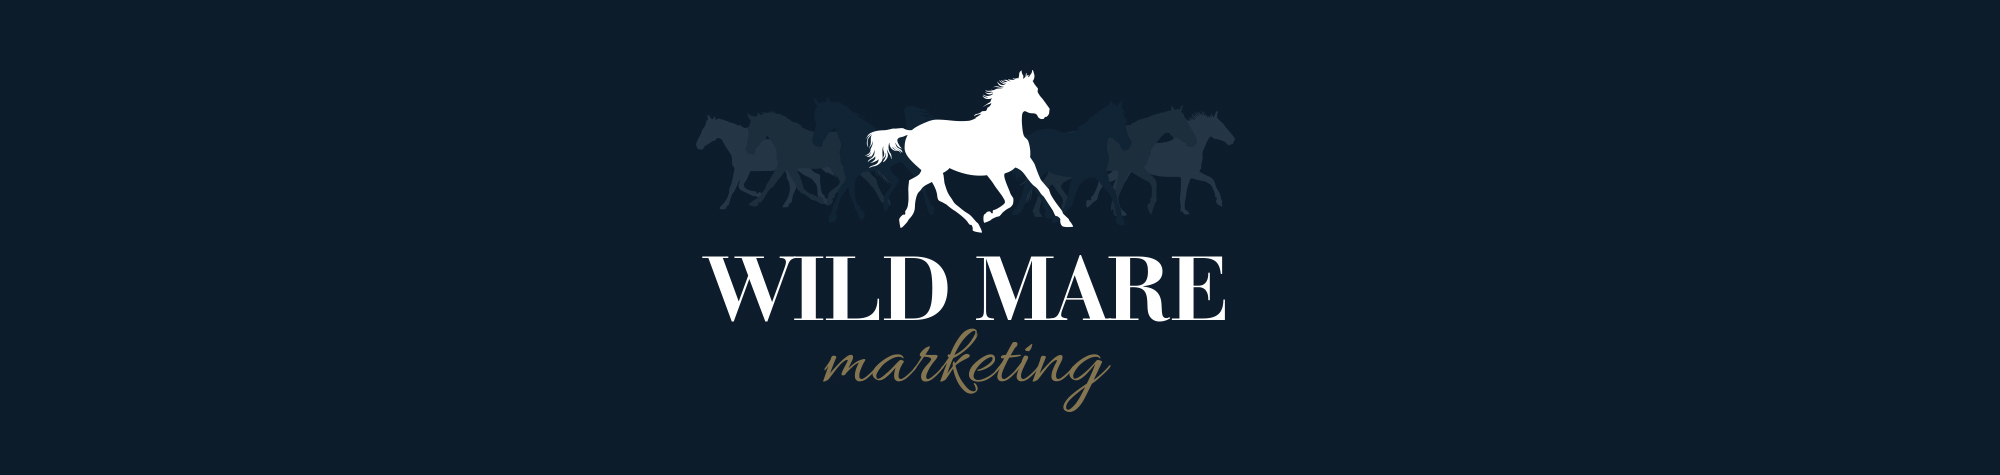 Wild Mare Marketing